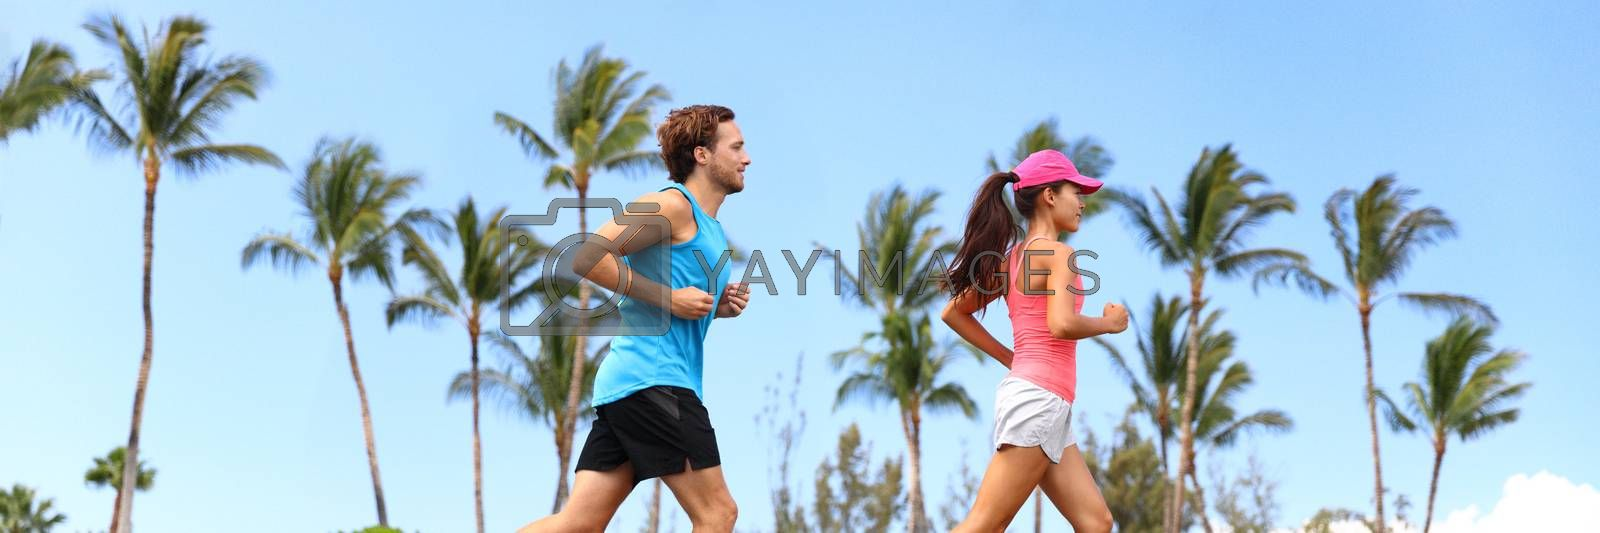 Healthy runners couple running lifestyle banner. Sport fitness people jogging together in summer park outdoors. Horizontal landscape with palm trees background.